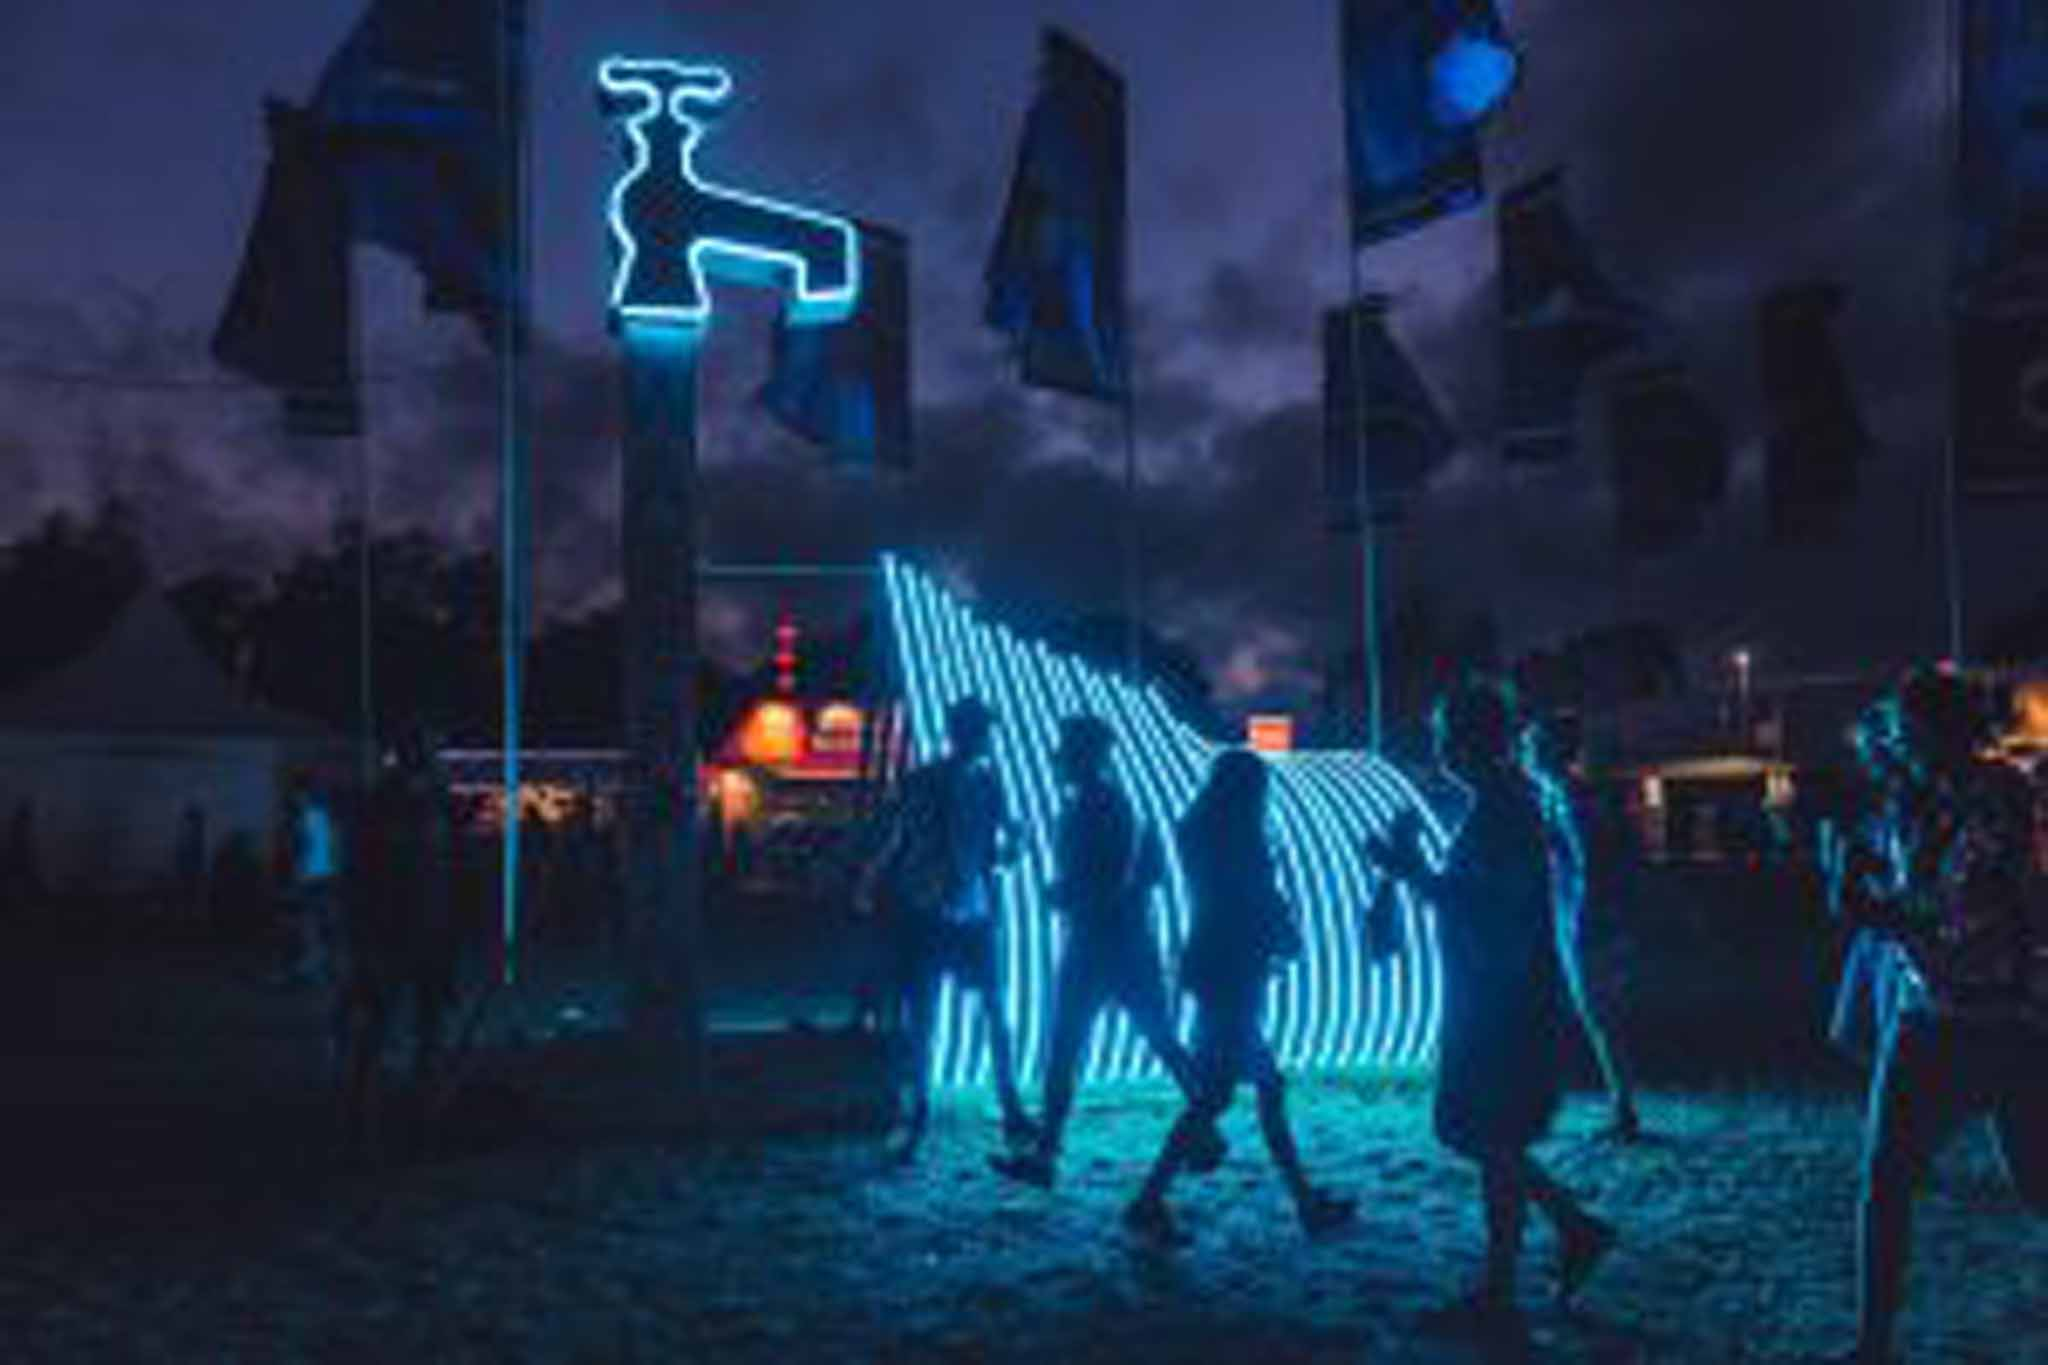 thumbnail image for WaterAid Pavilion: Glastonbury